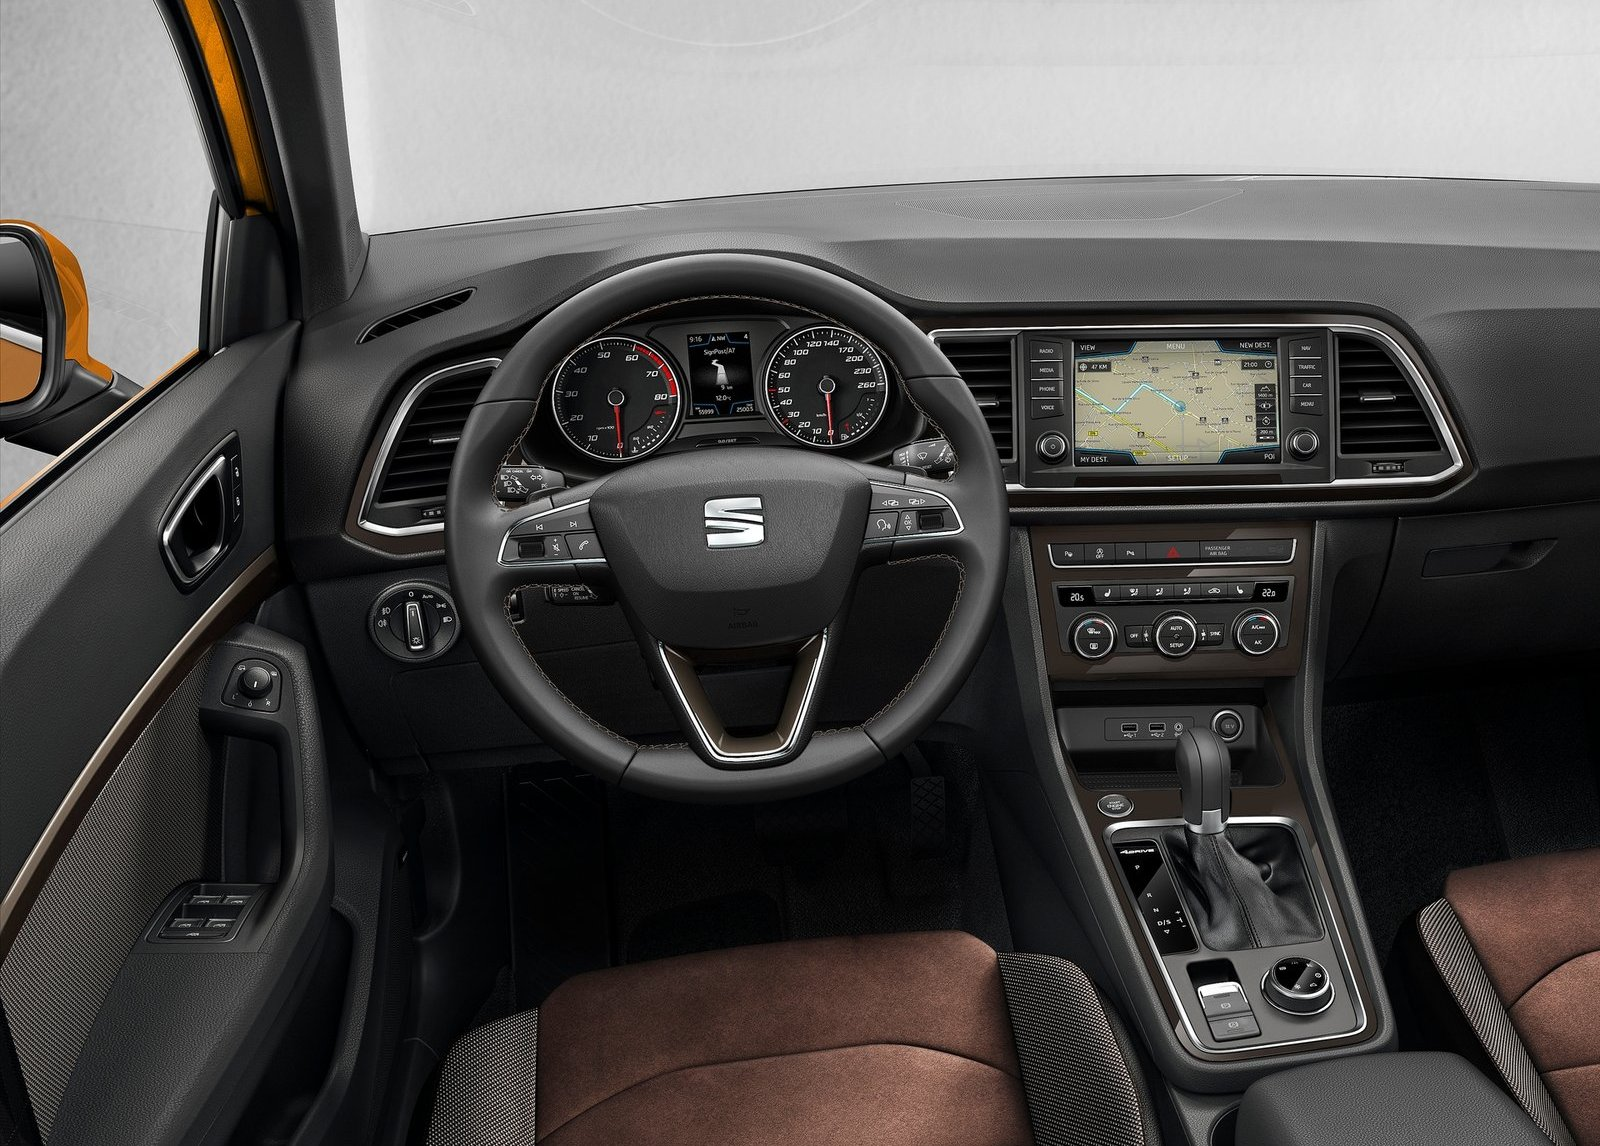 2018 Seat Ateca interior photo